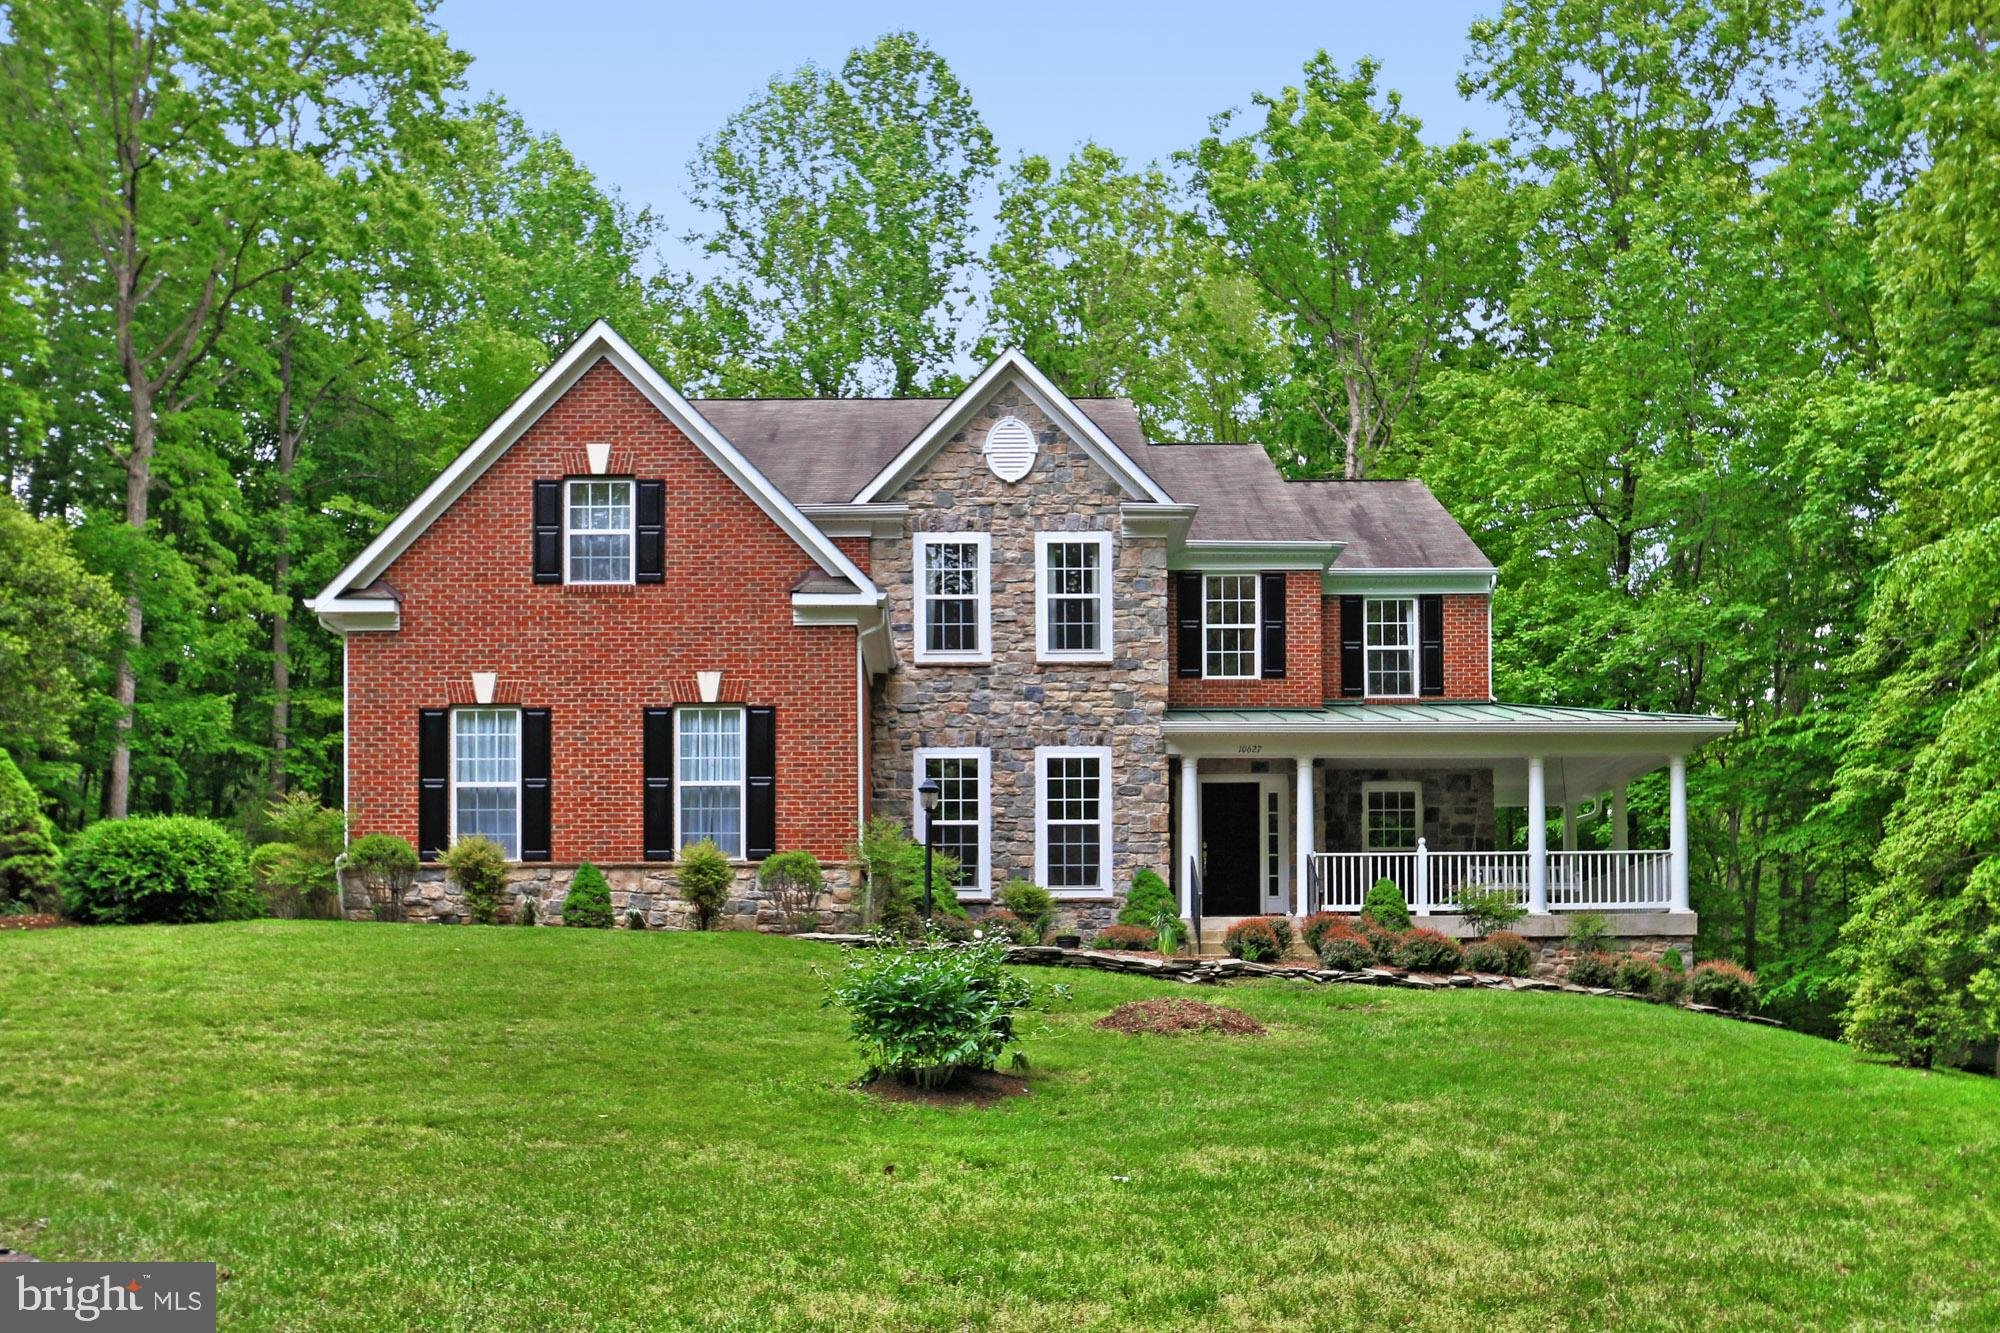 10627 TIMBERIDGE ROAD, FAIRFAX STATION, VA 22039